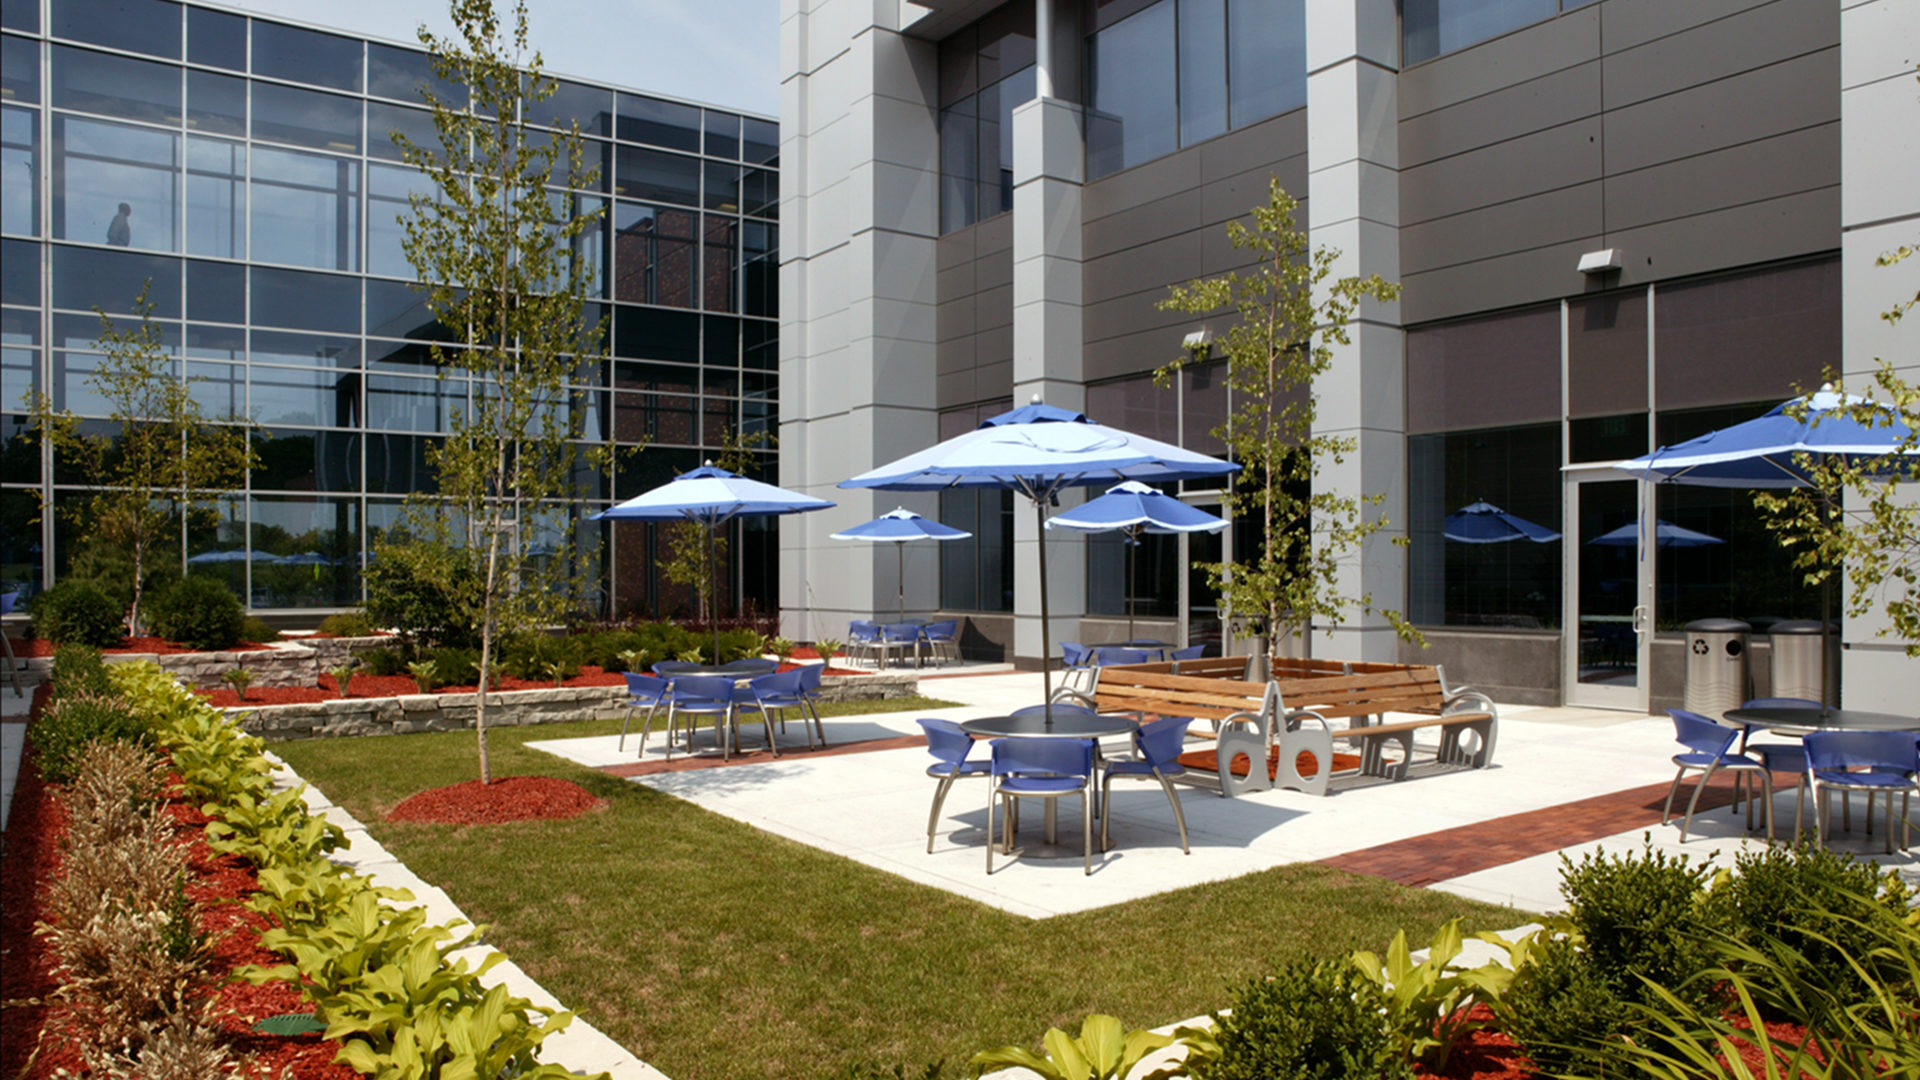 Boston Scientific Weaver Lake Phase III Expansion High Tech Manufacturing Exterior Courtyard Seating